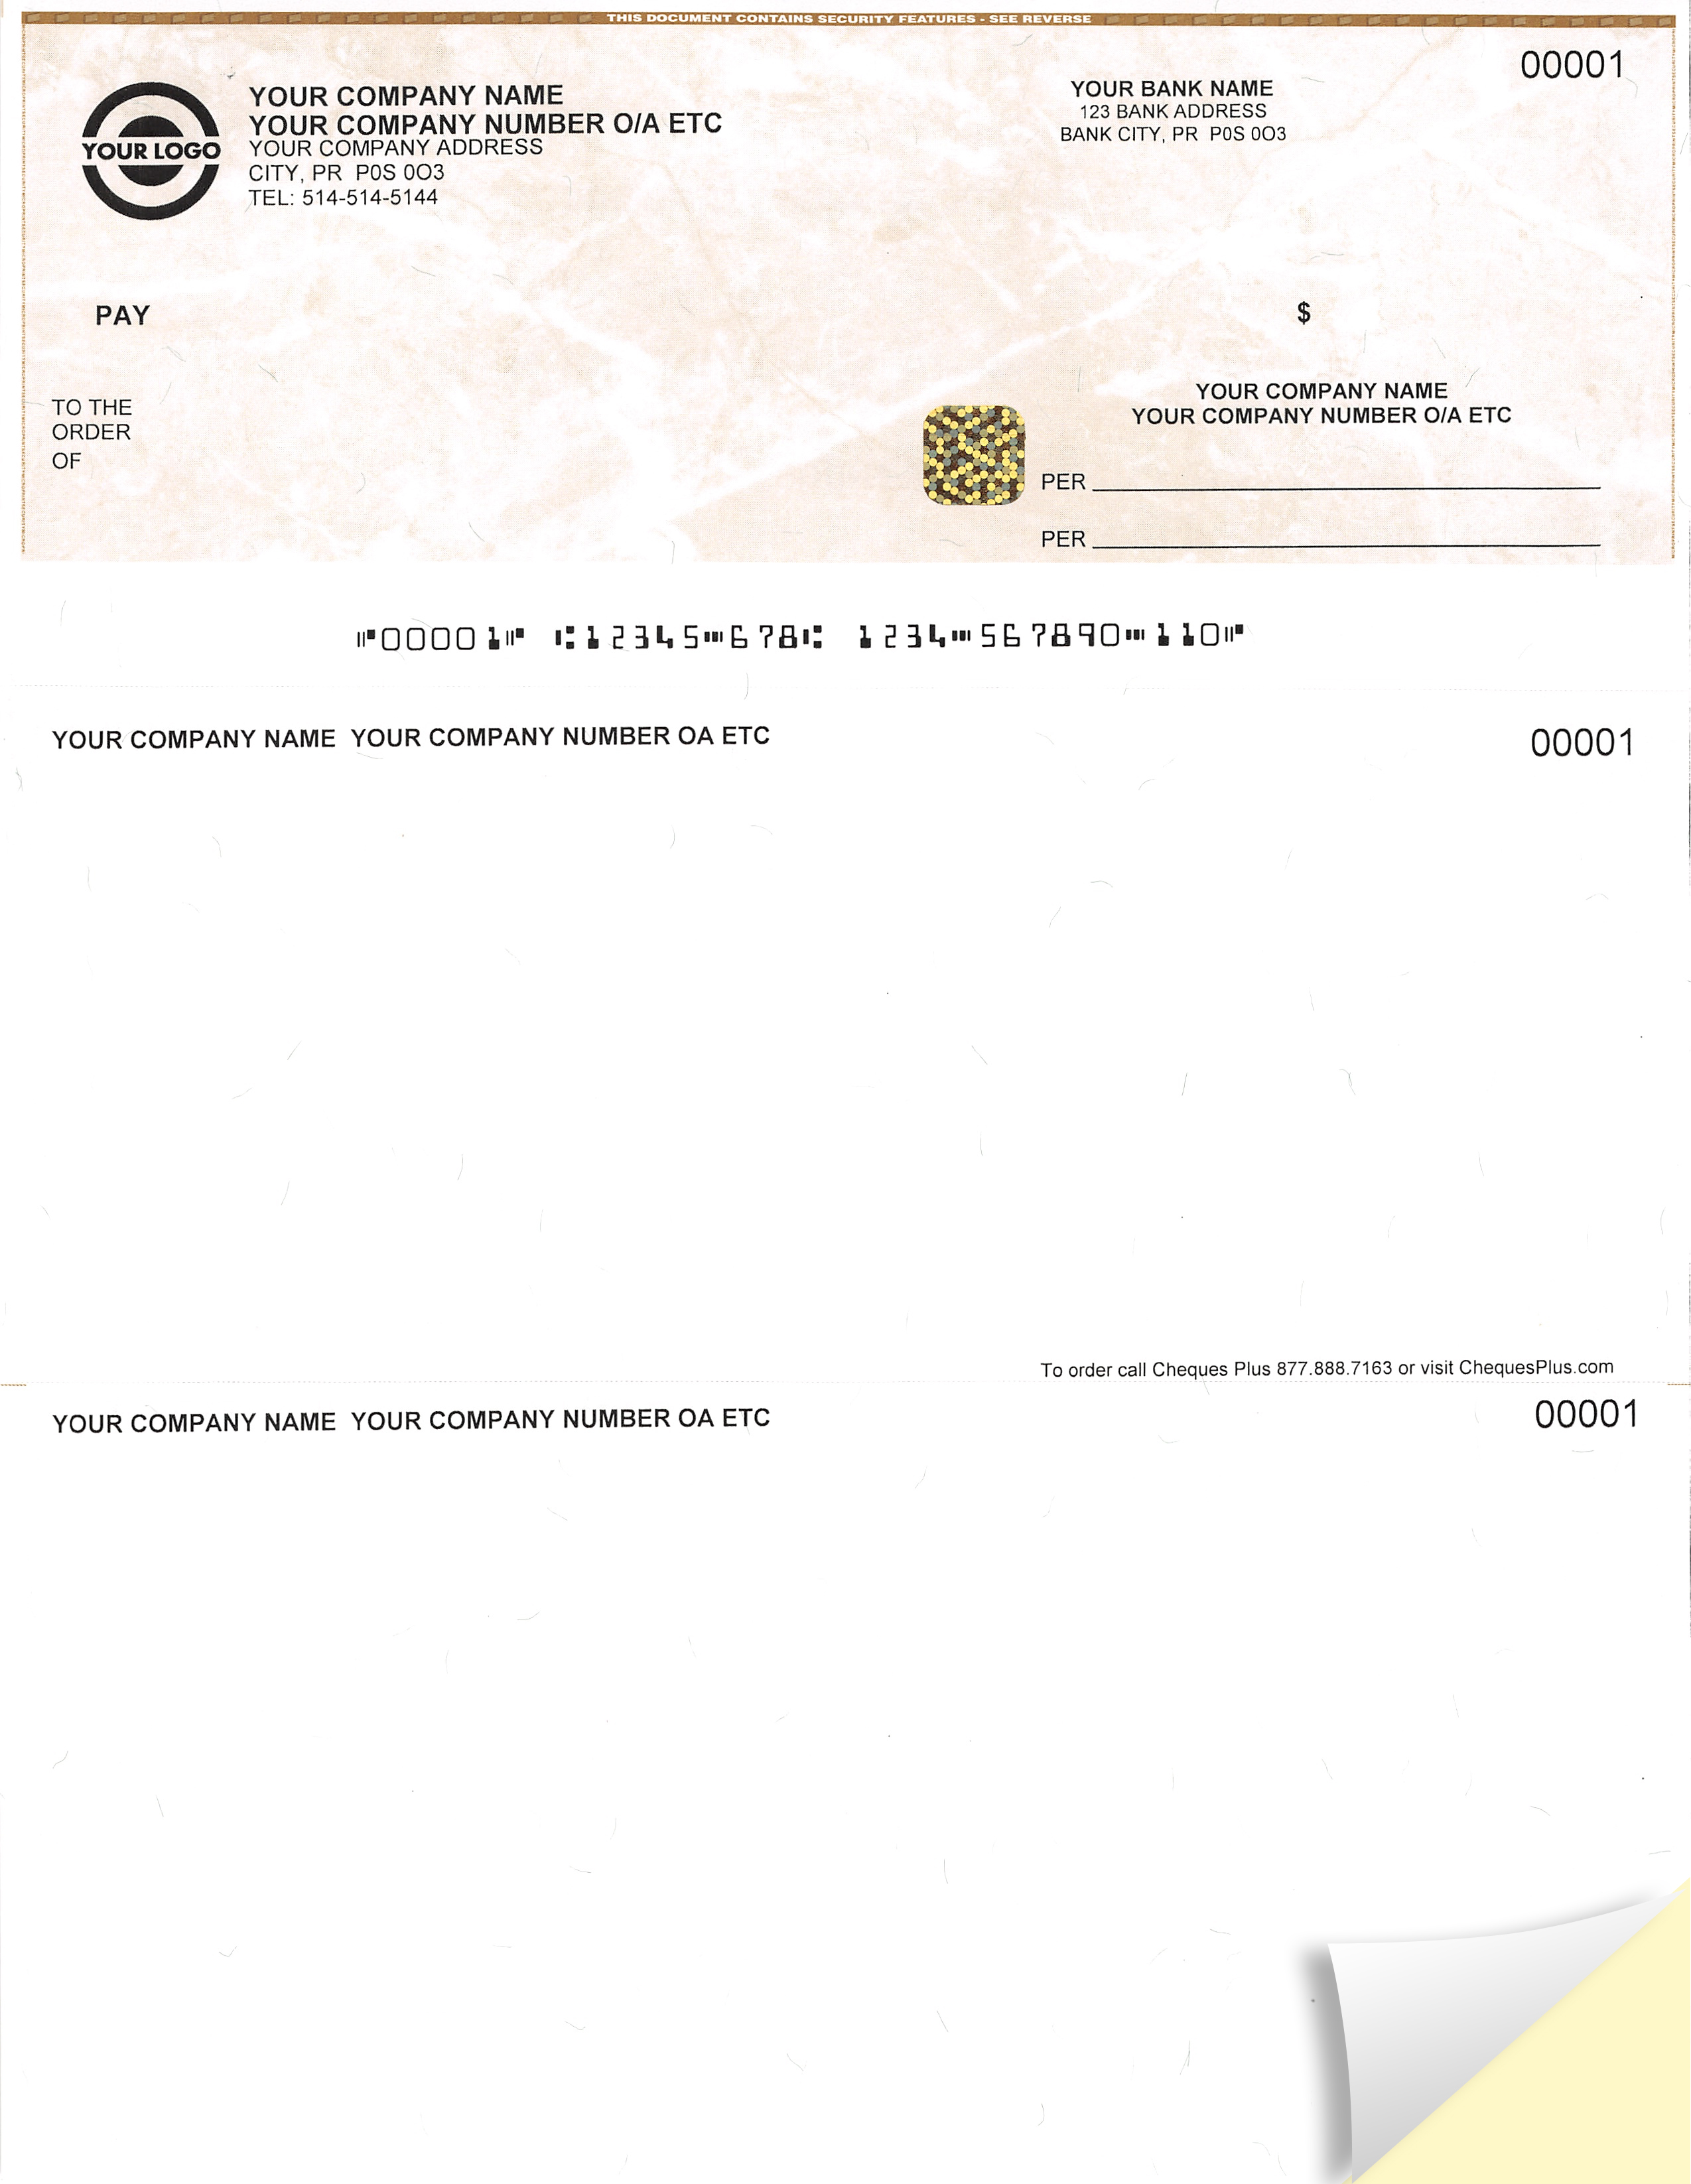 2 Part Premium High Security Foil Hologram Cheque - 2 Copies